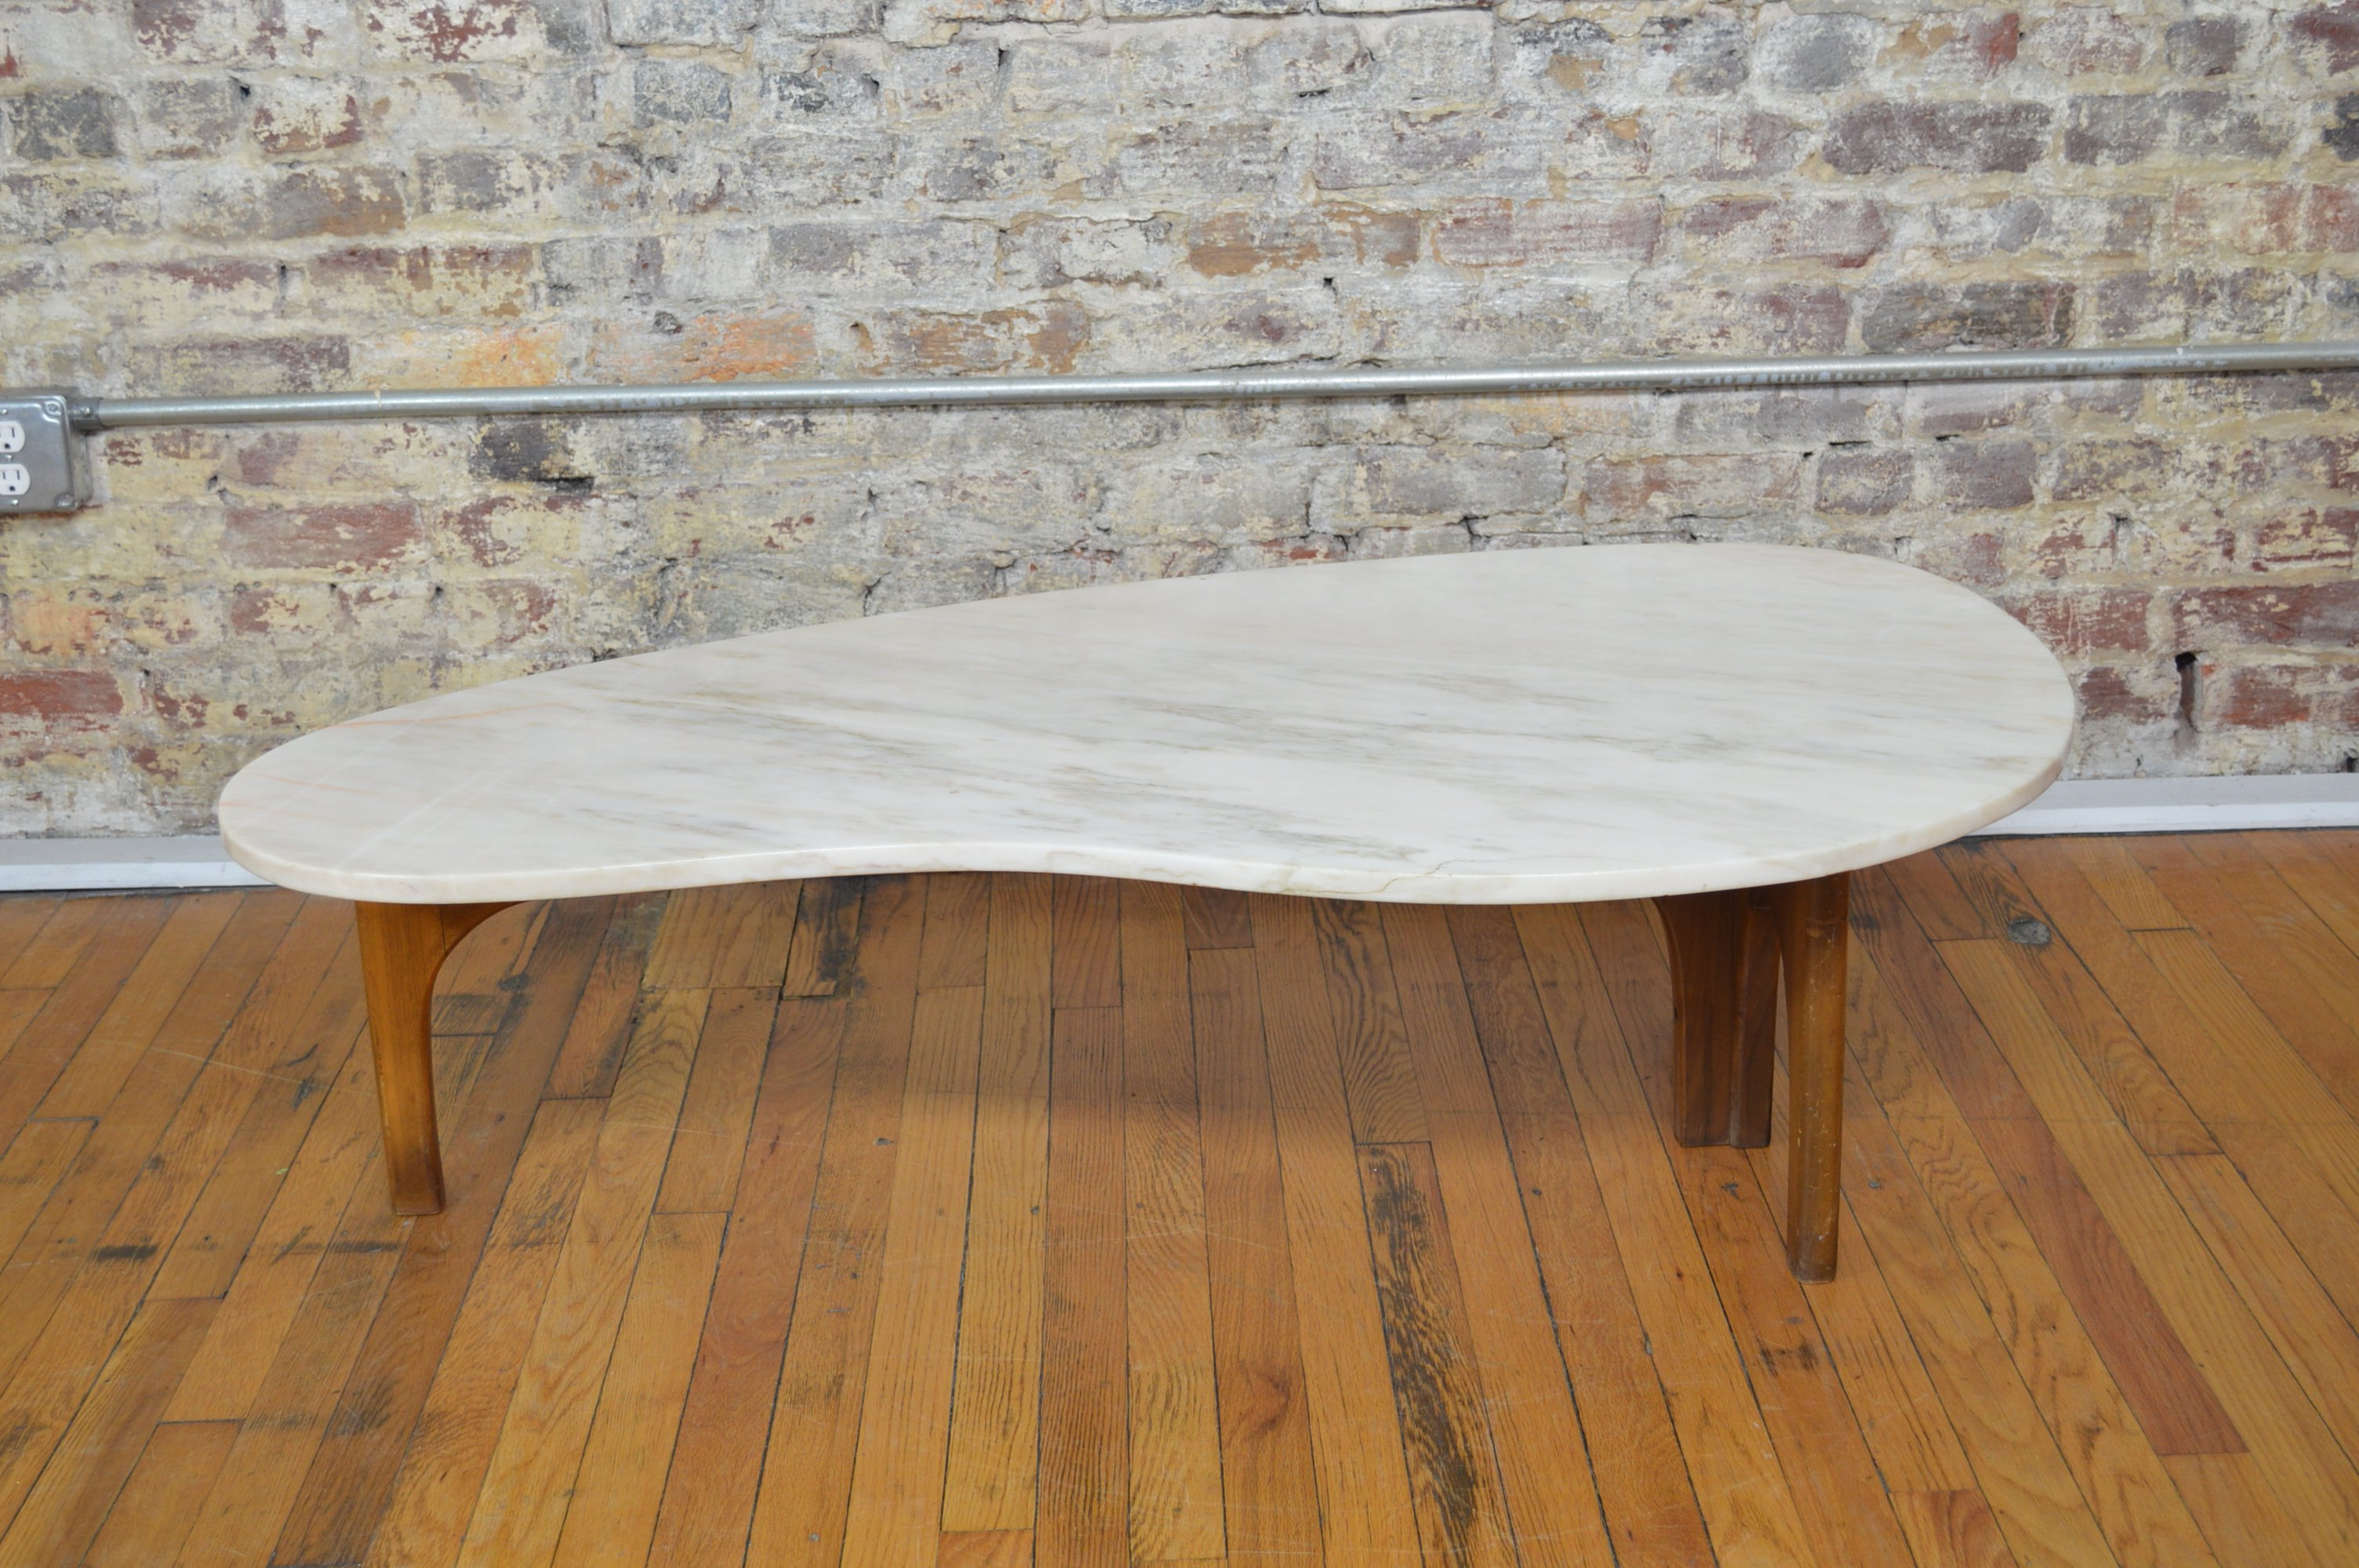 Fashionable Extra Mid Century Modern Marble Coffee Table Unique Harvey Probber For Mid Century Modern Marble Coffee Tables (View 3 of 20)